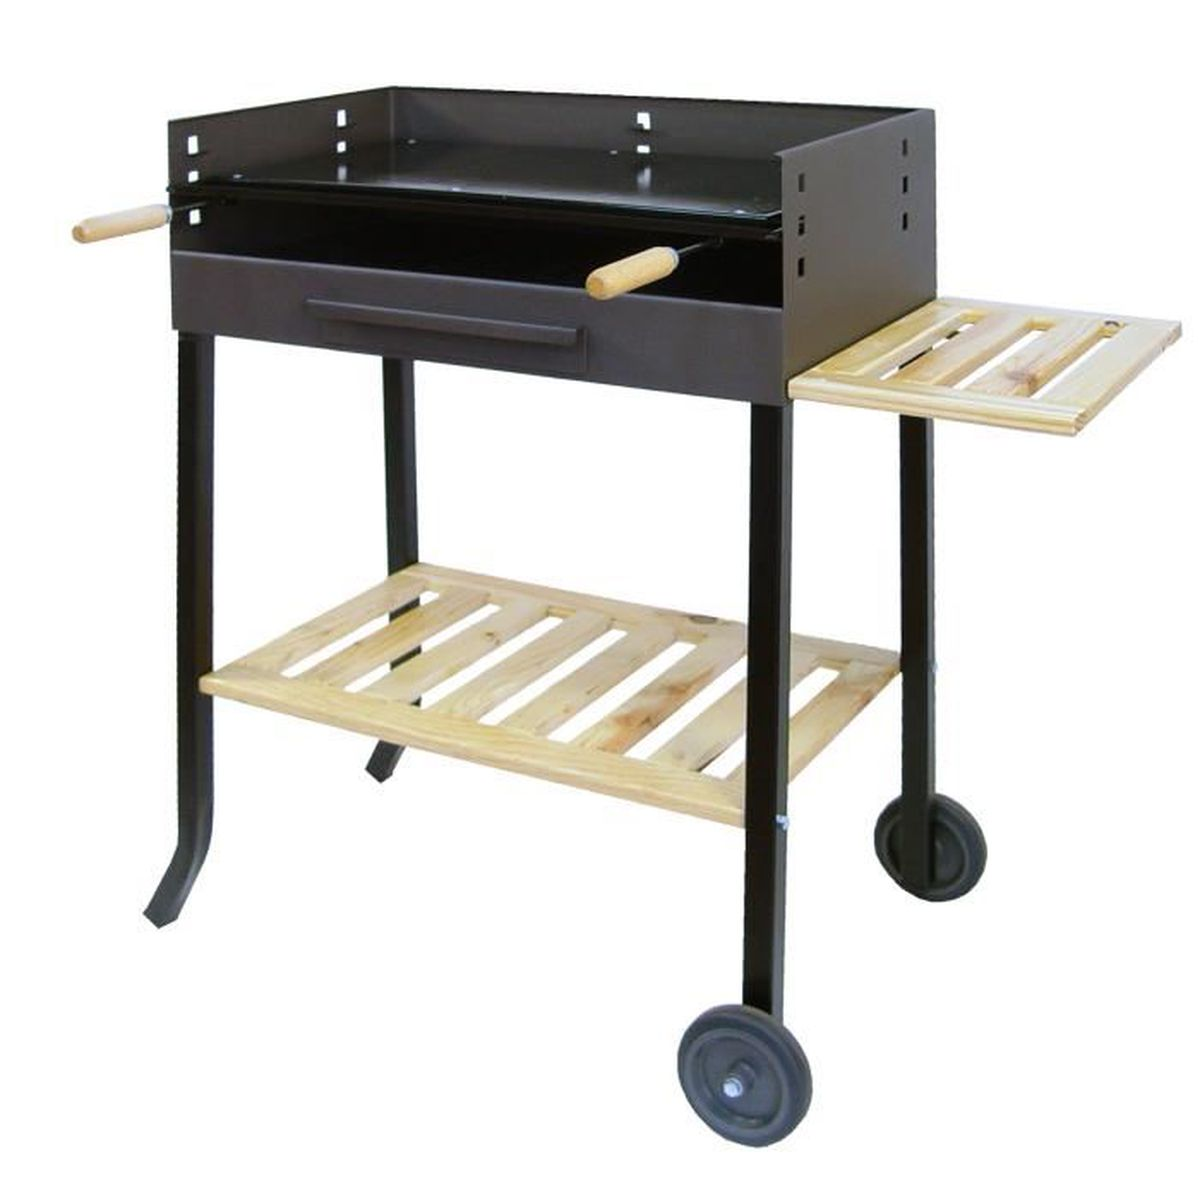 barbecue plancha en acier sur chariot achat vente barbecue barbecue plancha en acier cdiscount. Black Bedroom Furniture Sets. Home Design Ideas